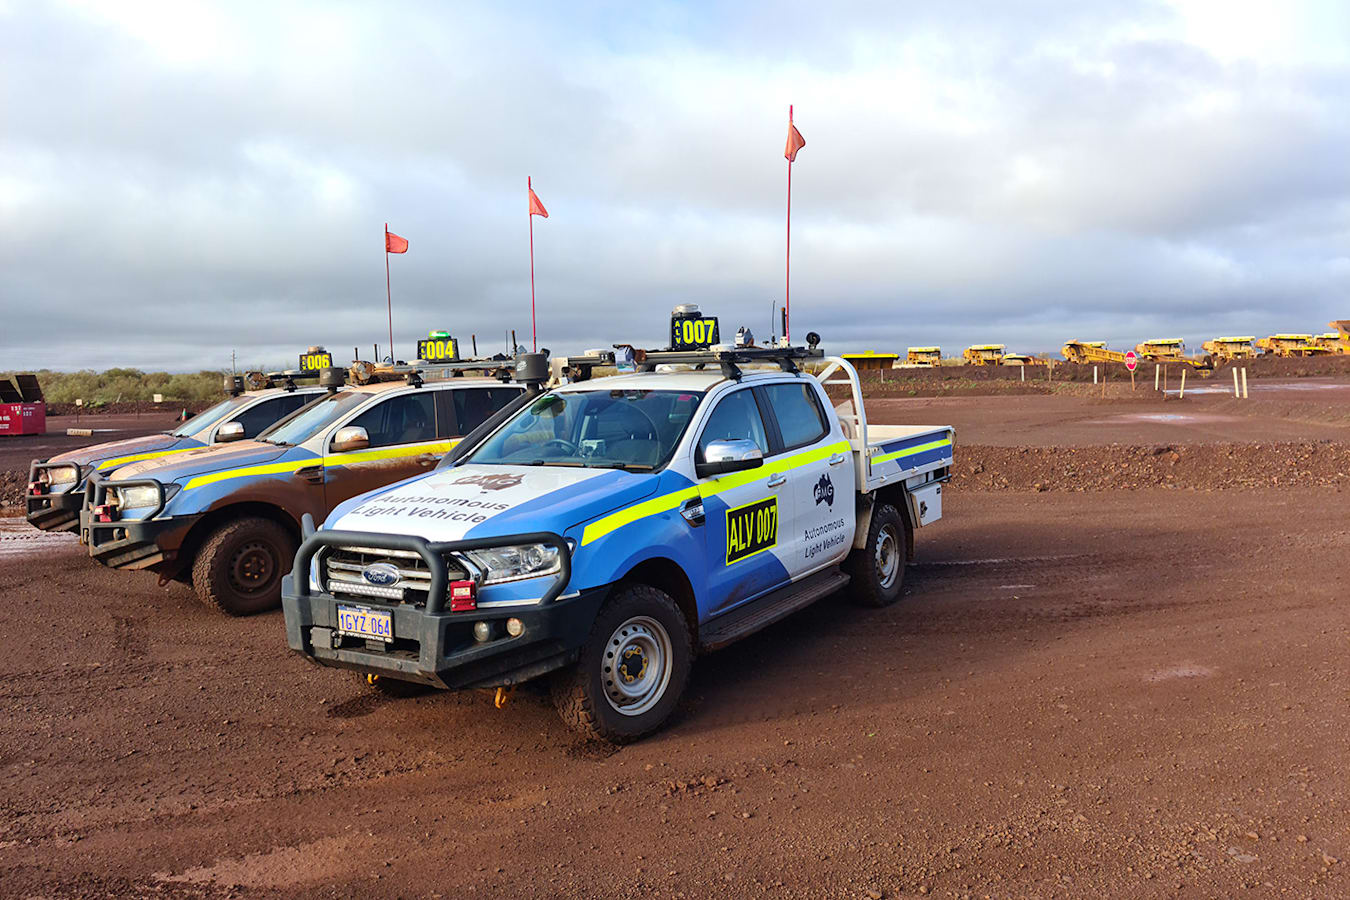 Fortescue Metals Group driverless ford ranger